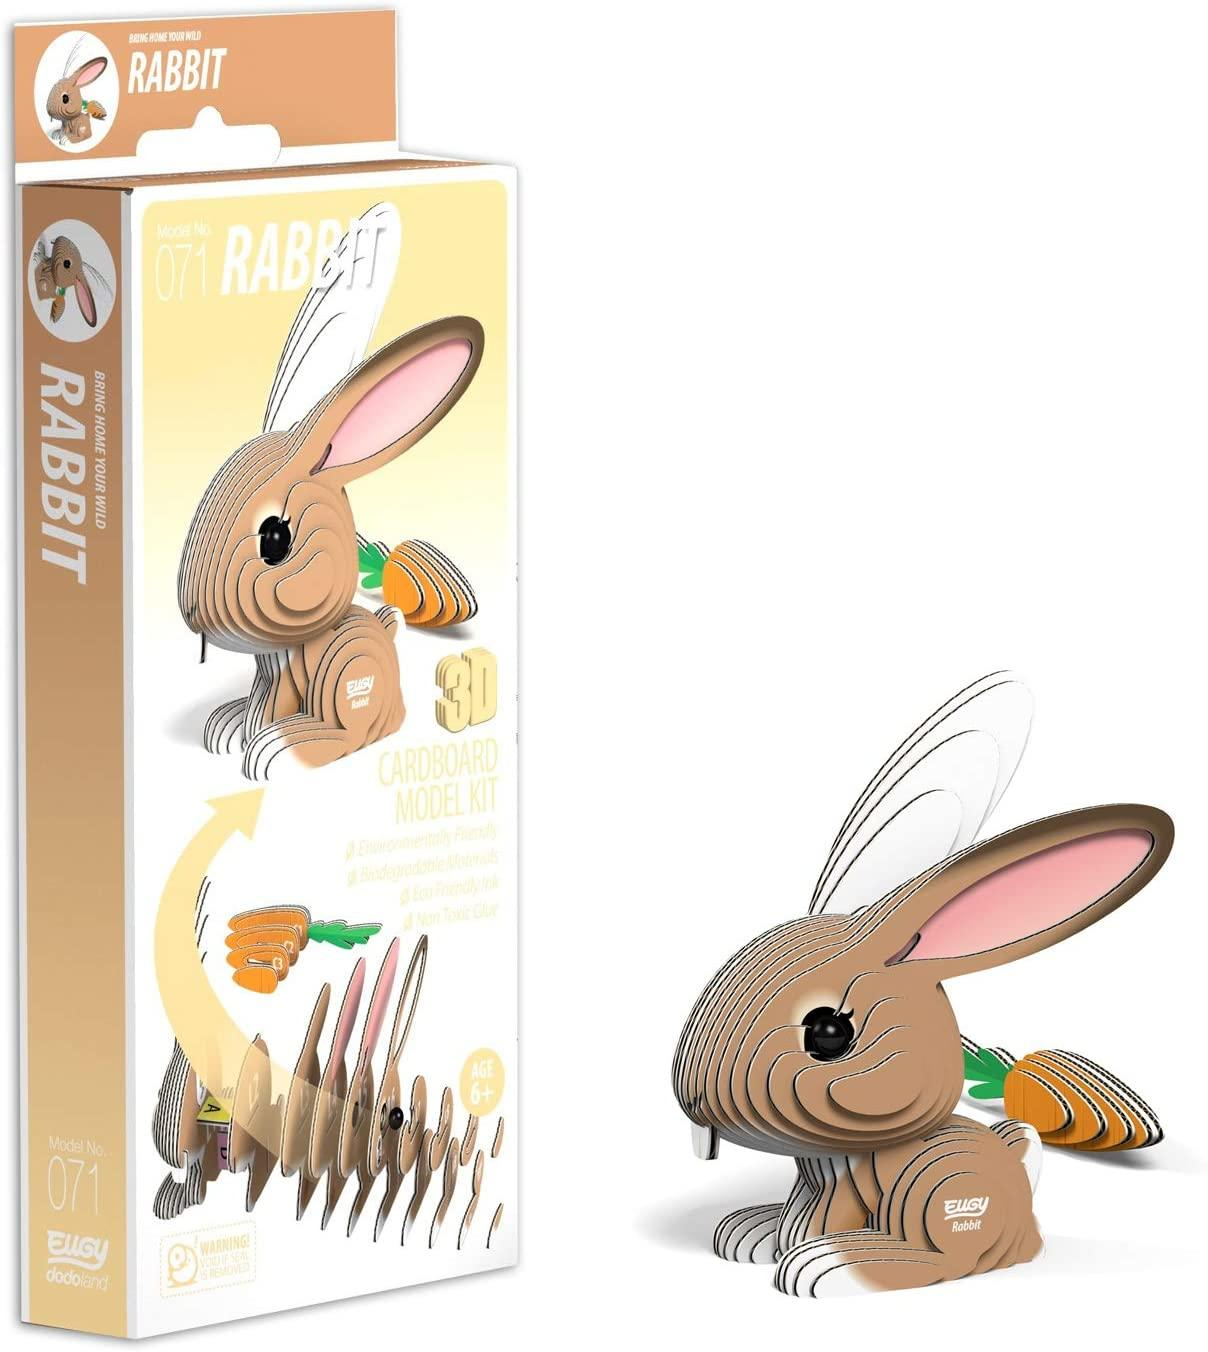 Packaging for Eugy rabbit.